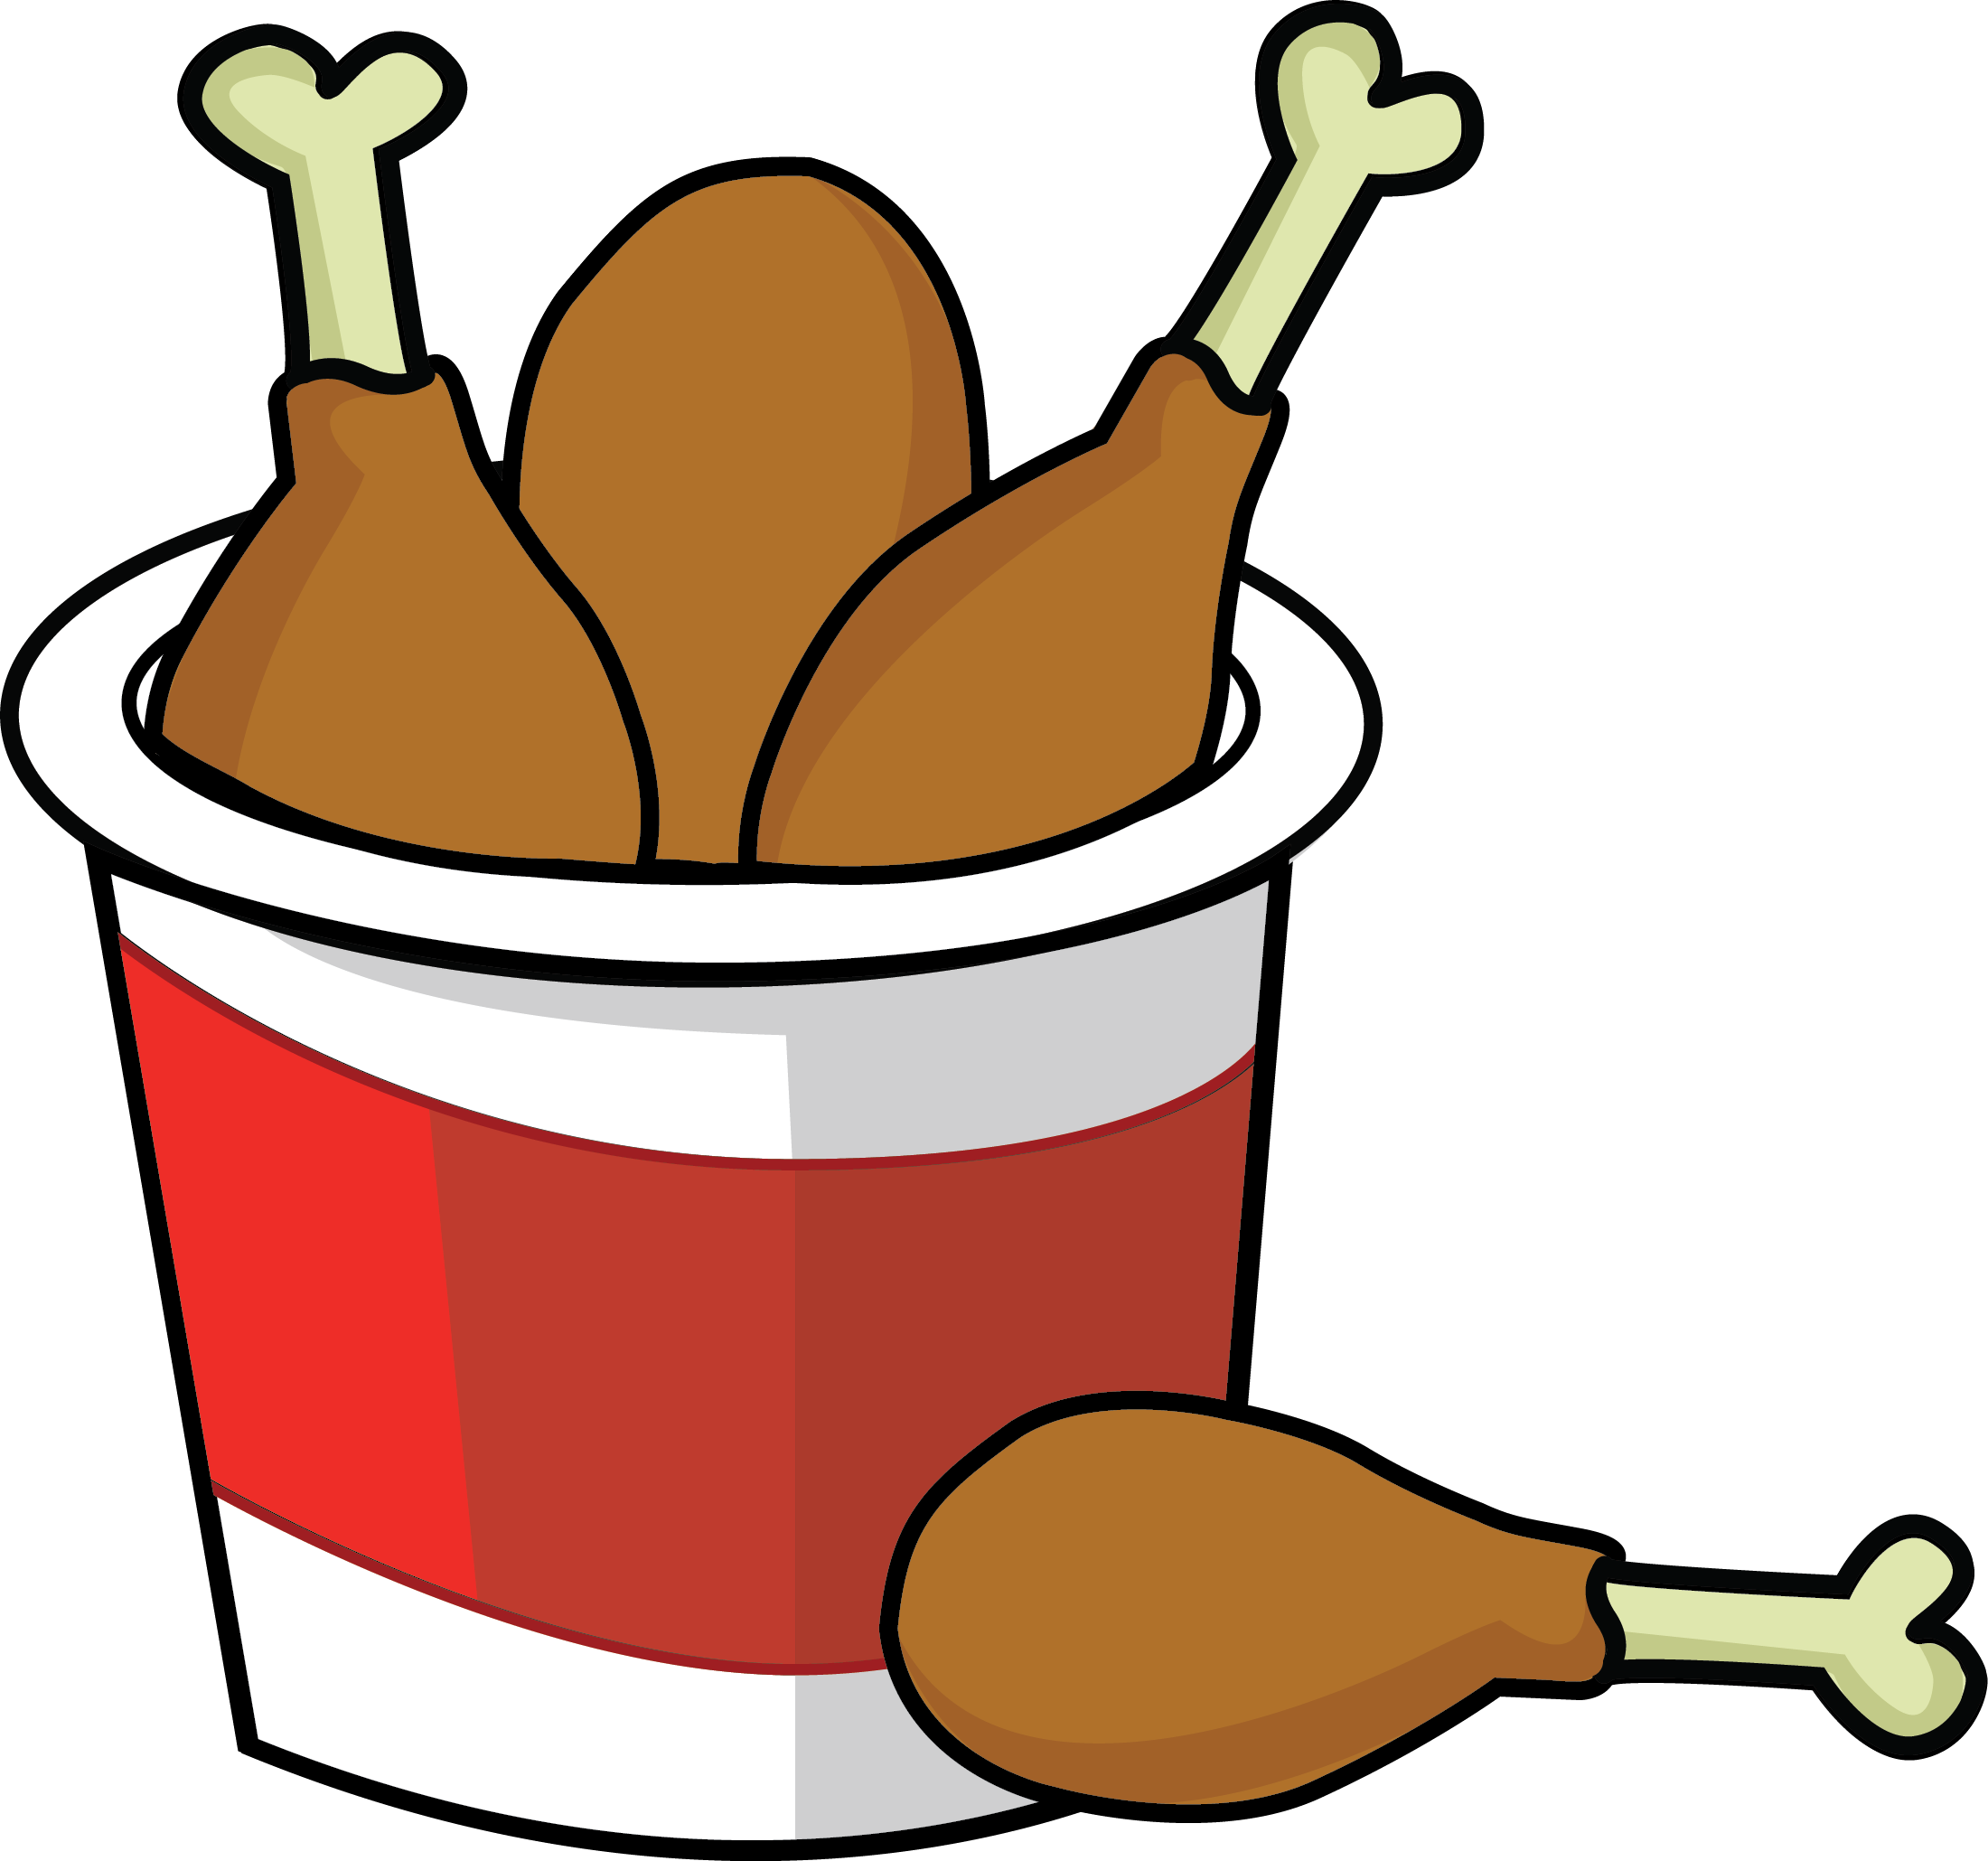 Chicken bucket clipart image transparent Awesome Chicken Clipart - Bucket Of Fried Chicken Clipart ... image transparent